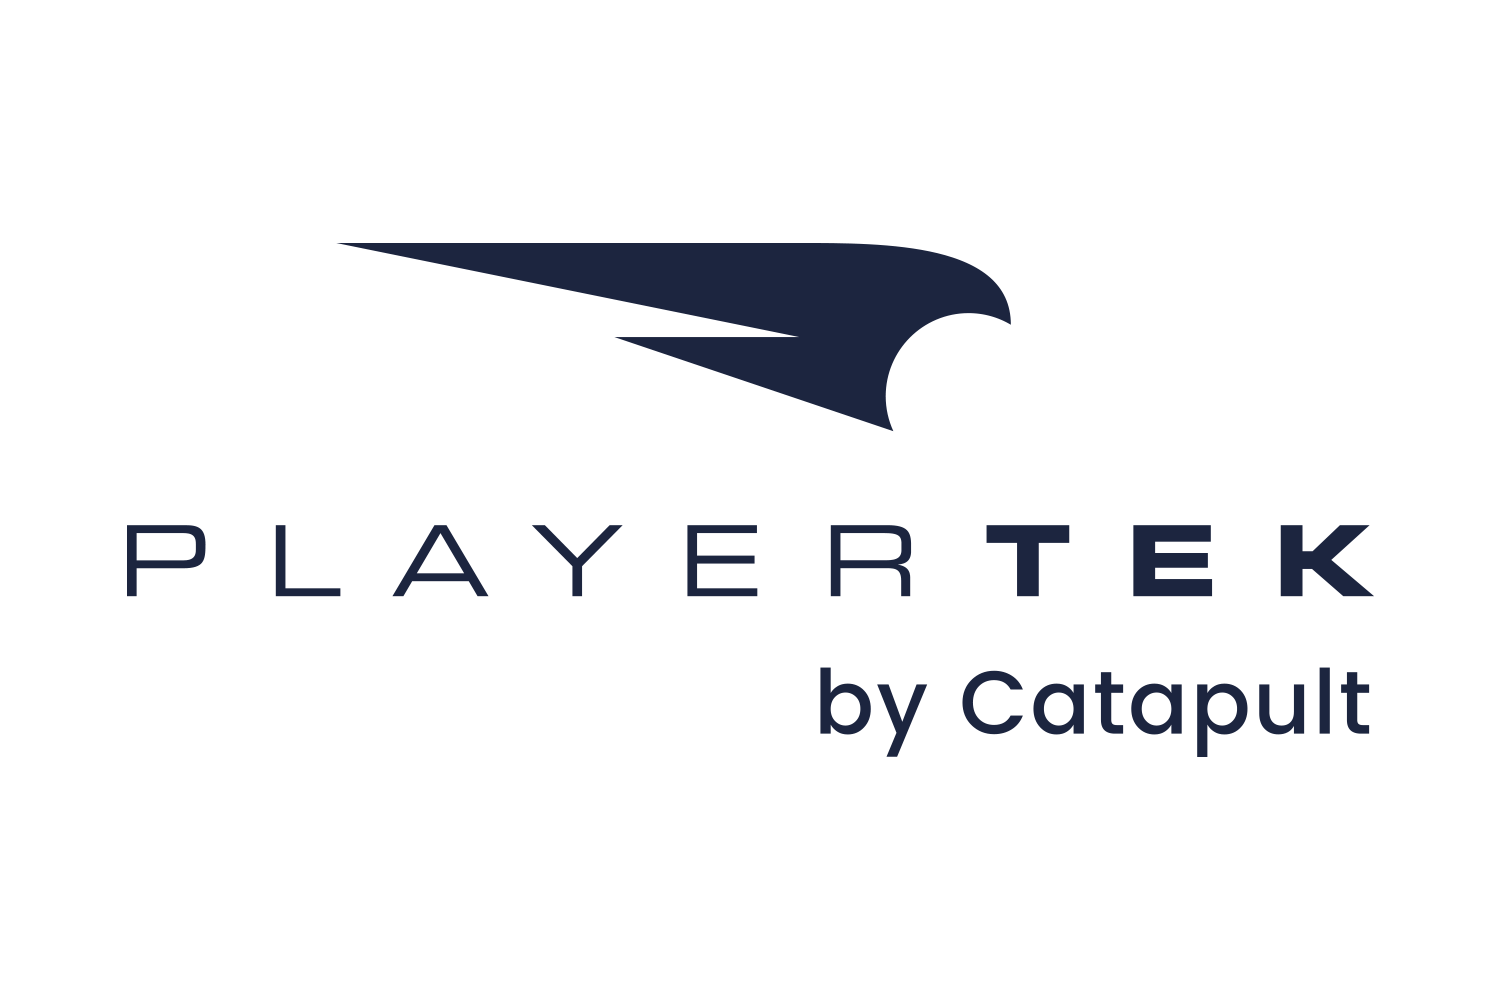 PLAYERTEK Catapult logo Original